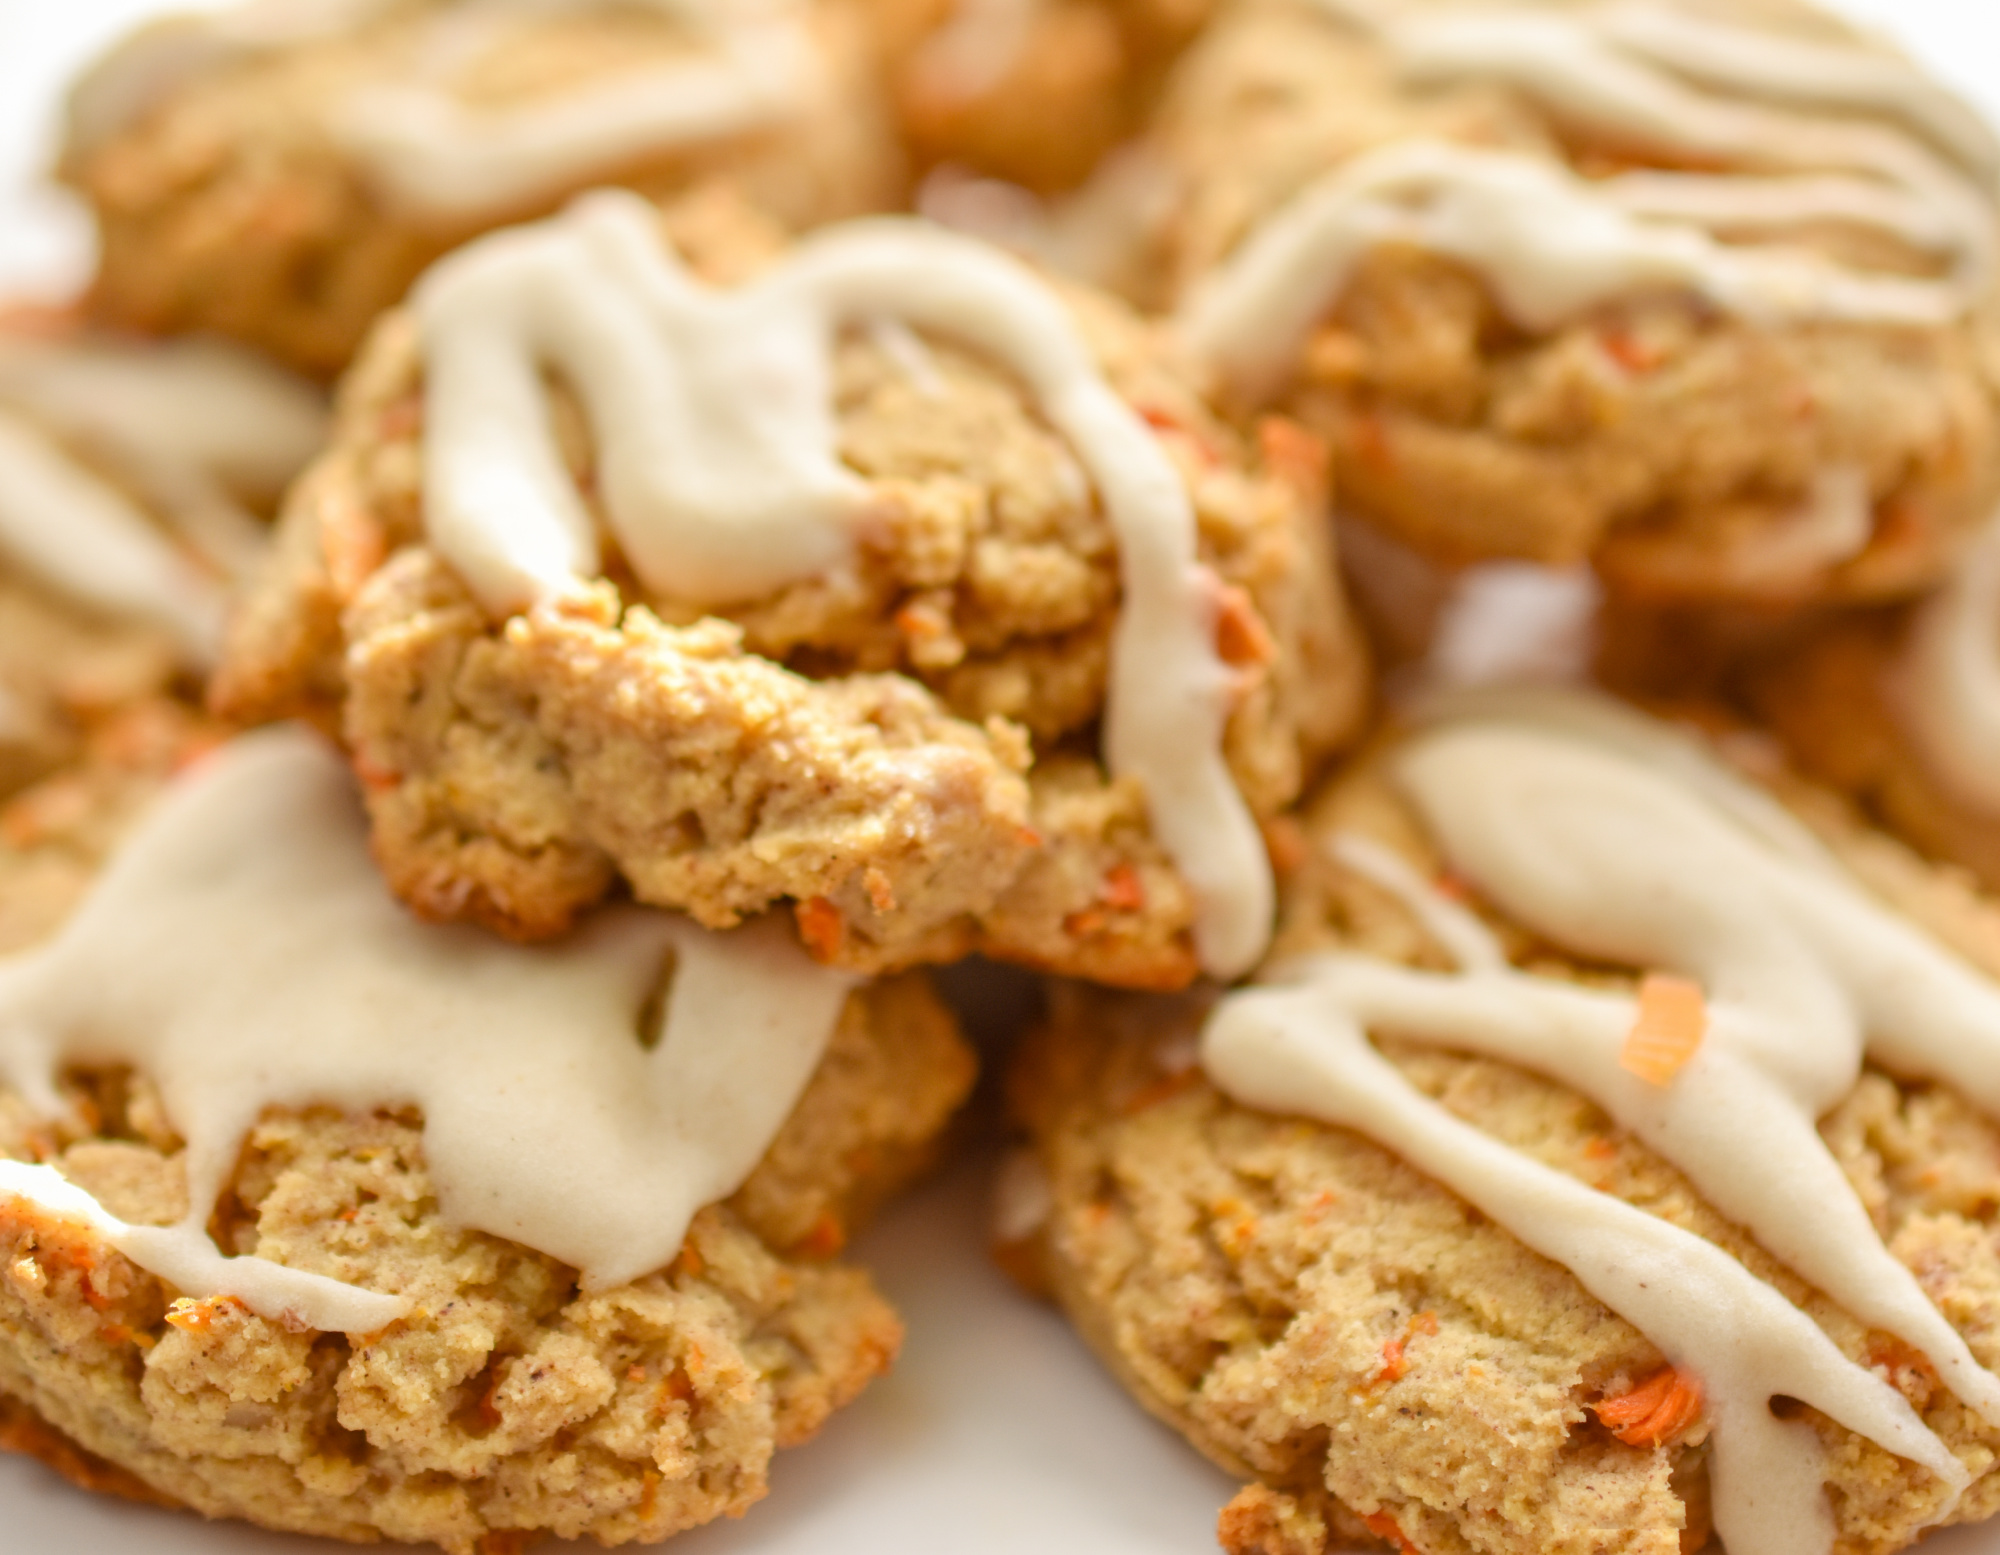 keto carrot cake cookies close up on a white plate